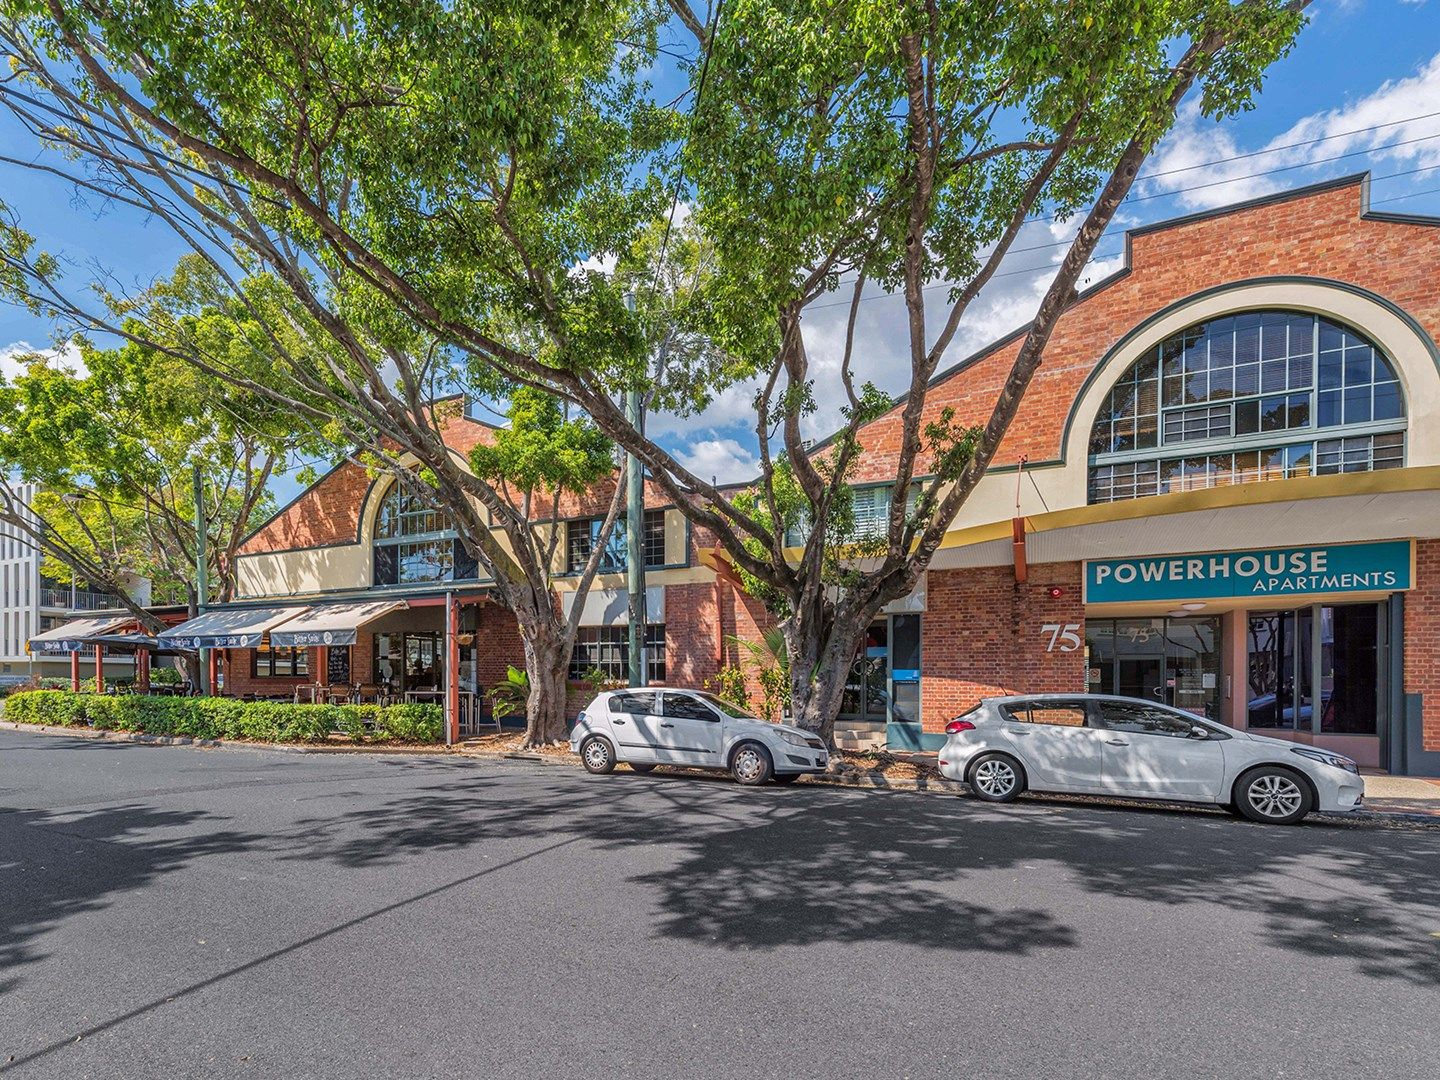 46/75 Welsby Street, New Farm QLD 4005, Image 2